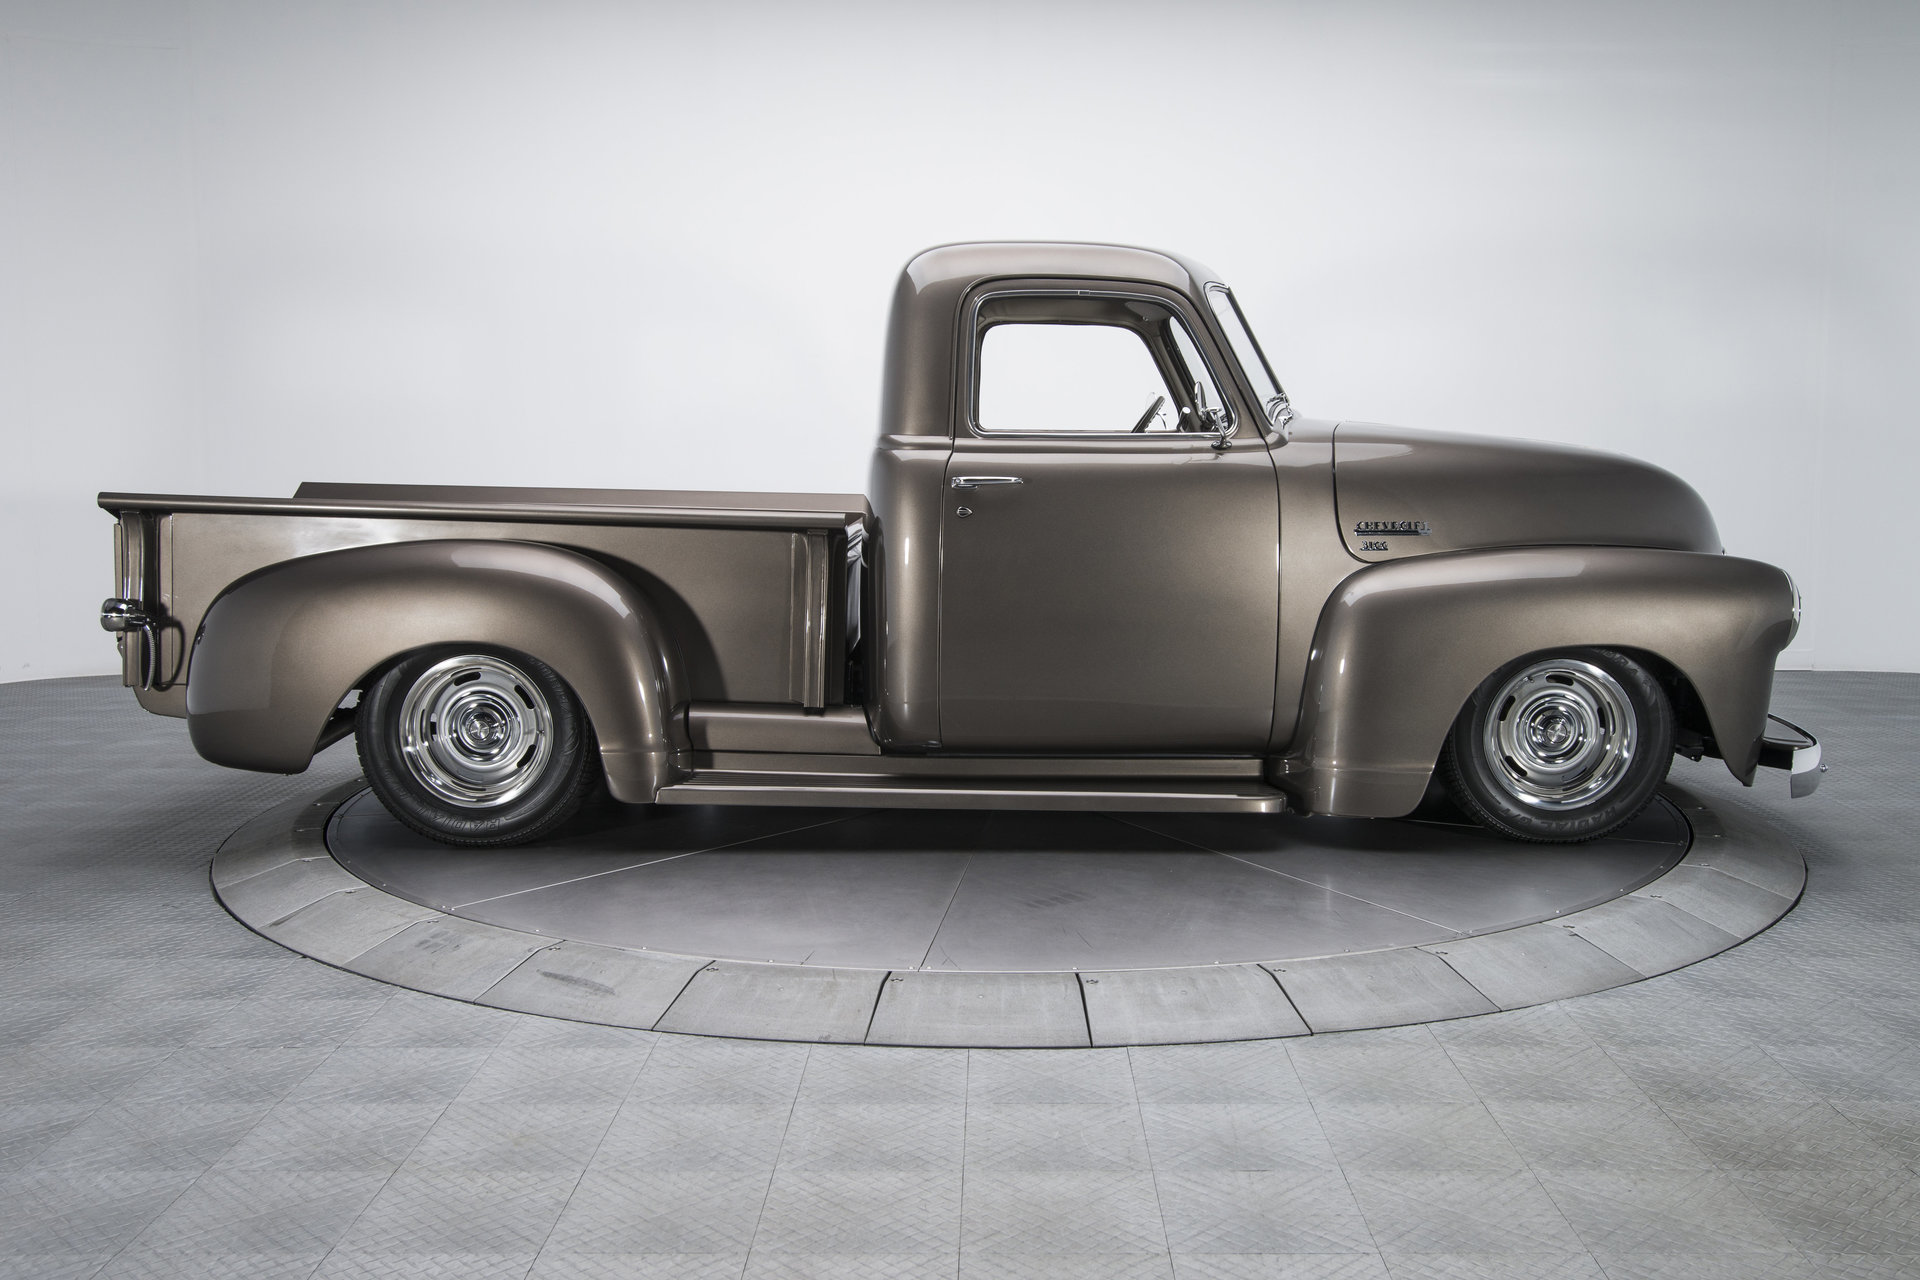 136079 1949 Chevrolet 3100 Rk Motors Classic Cars For Sale Chevy Pickup Hot Rod